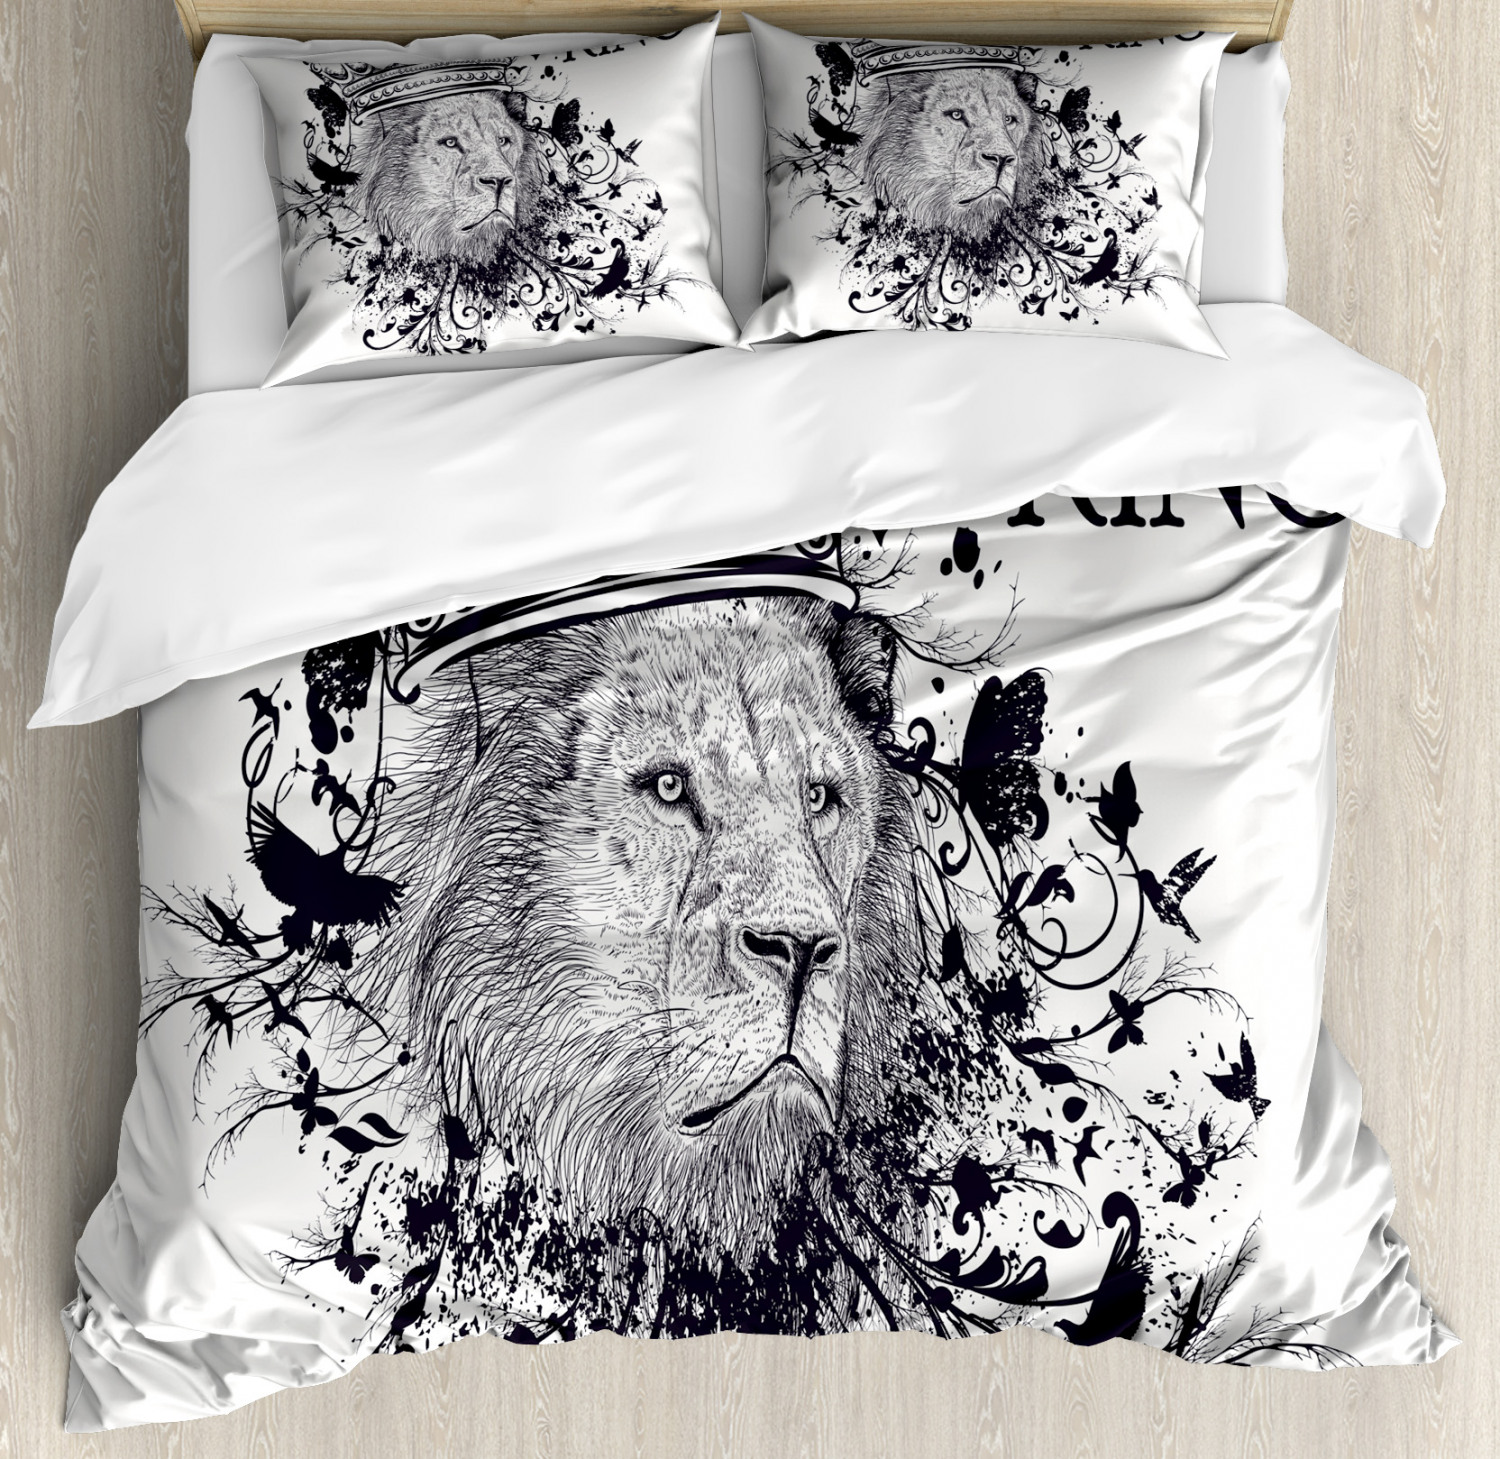 King Duvet Cover Set with Pillow Shams Reign of the Jungle Lion Print